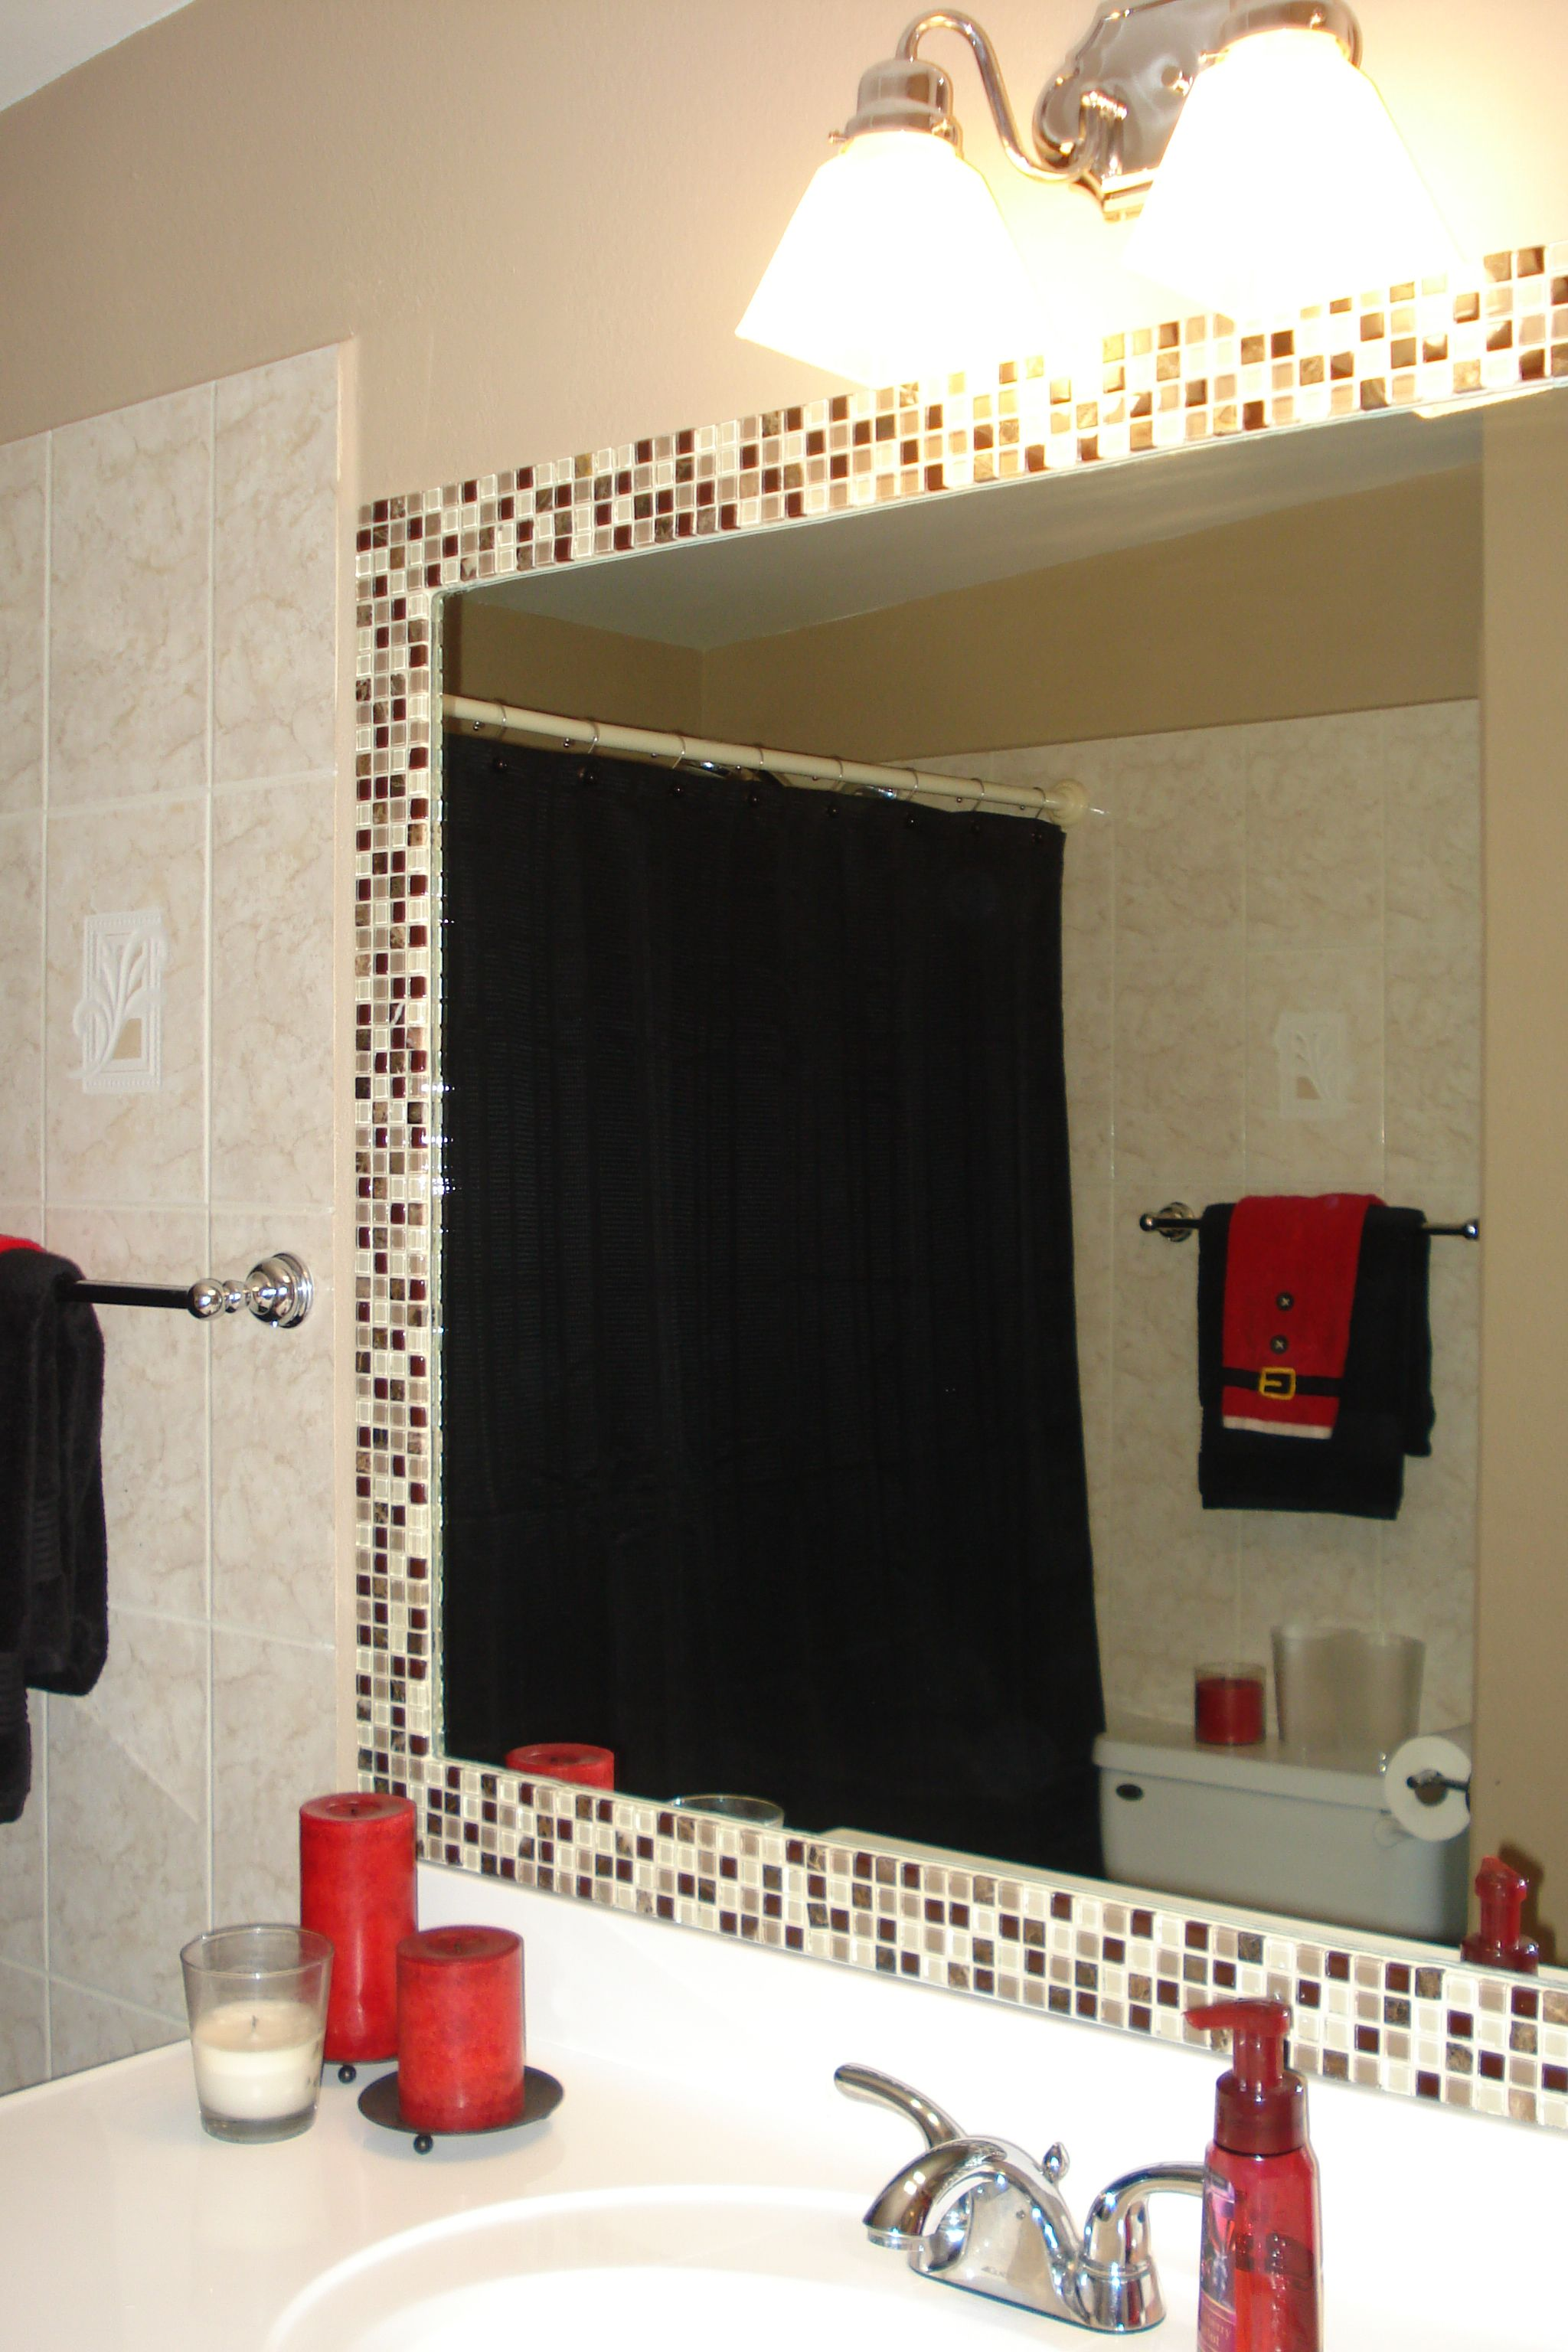 simple way to dress up a plain bathroom mirroradd tile! | for